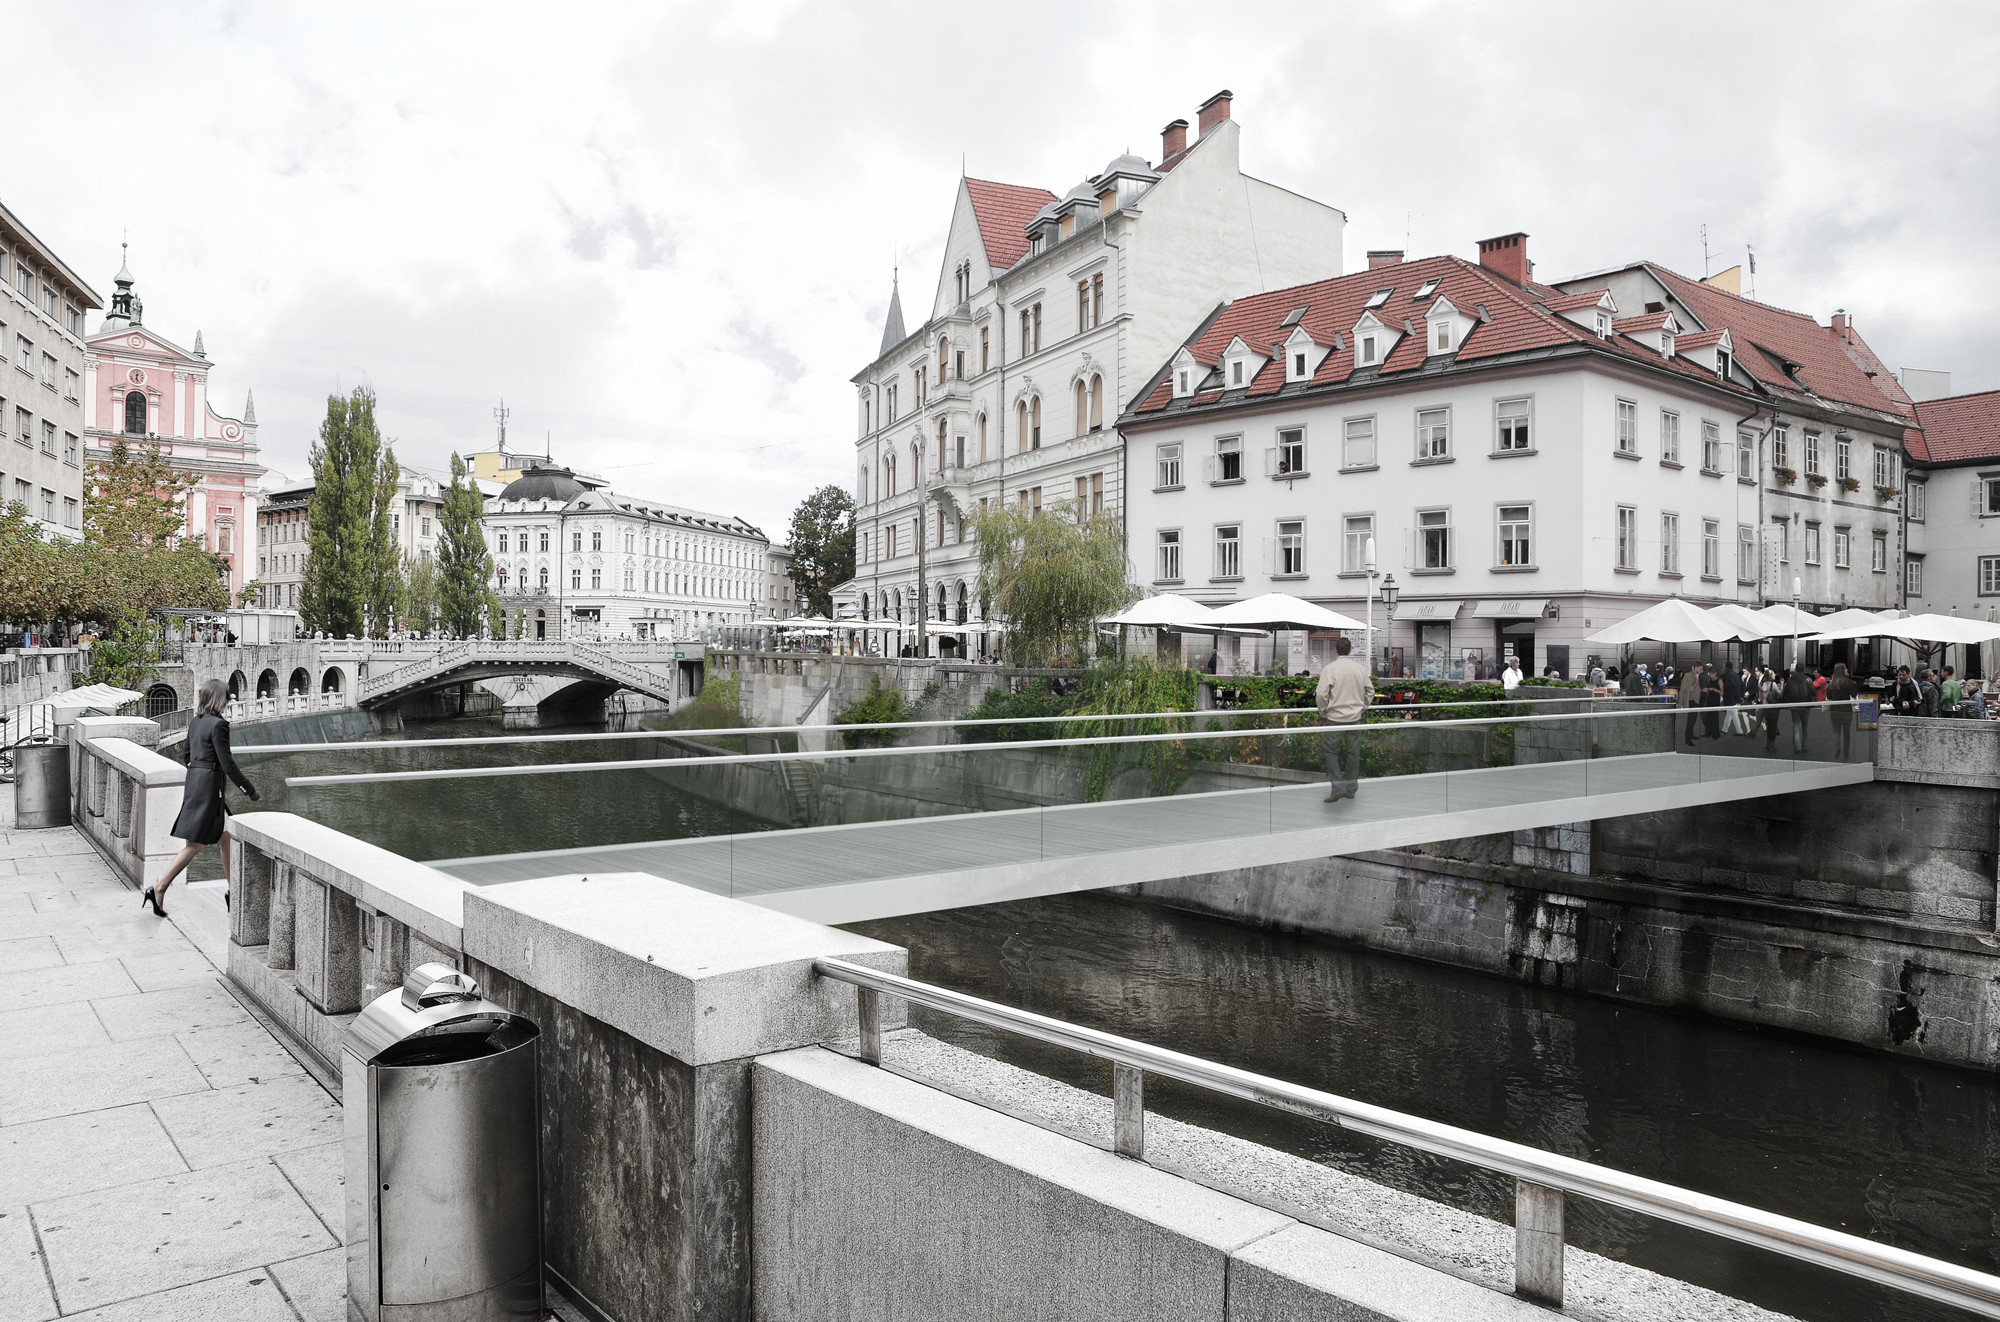 Footbridge in Ljubljana / Arhitektura d.o.o., Courtesy of Arhitektura d.o.o.